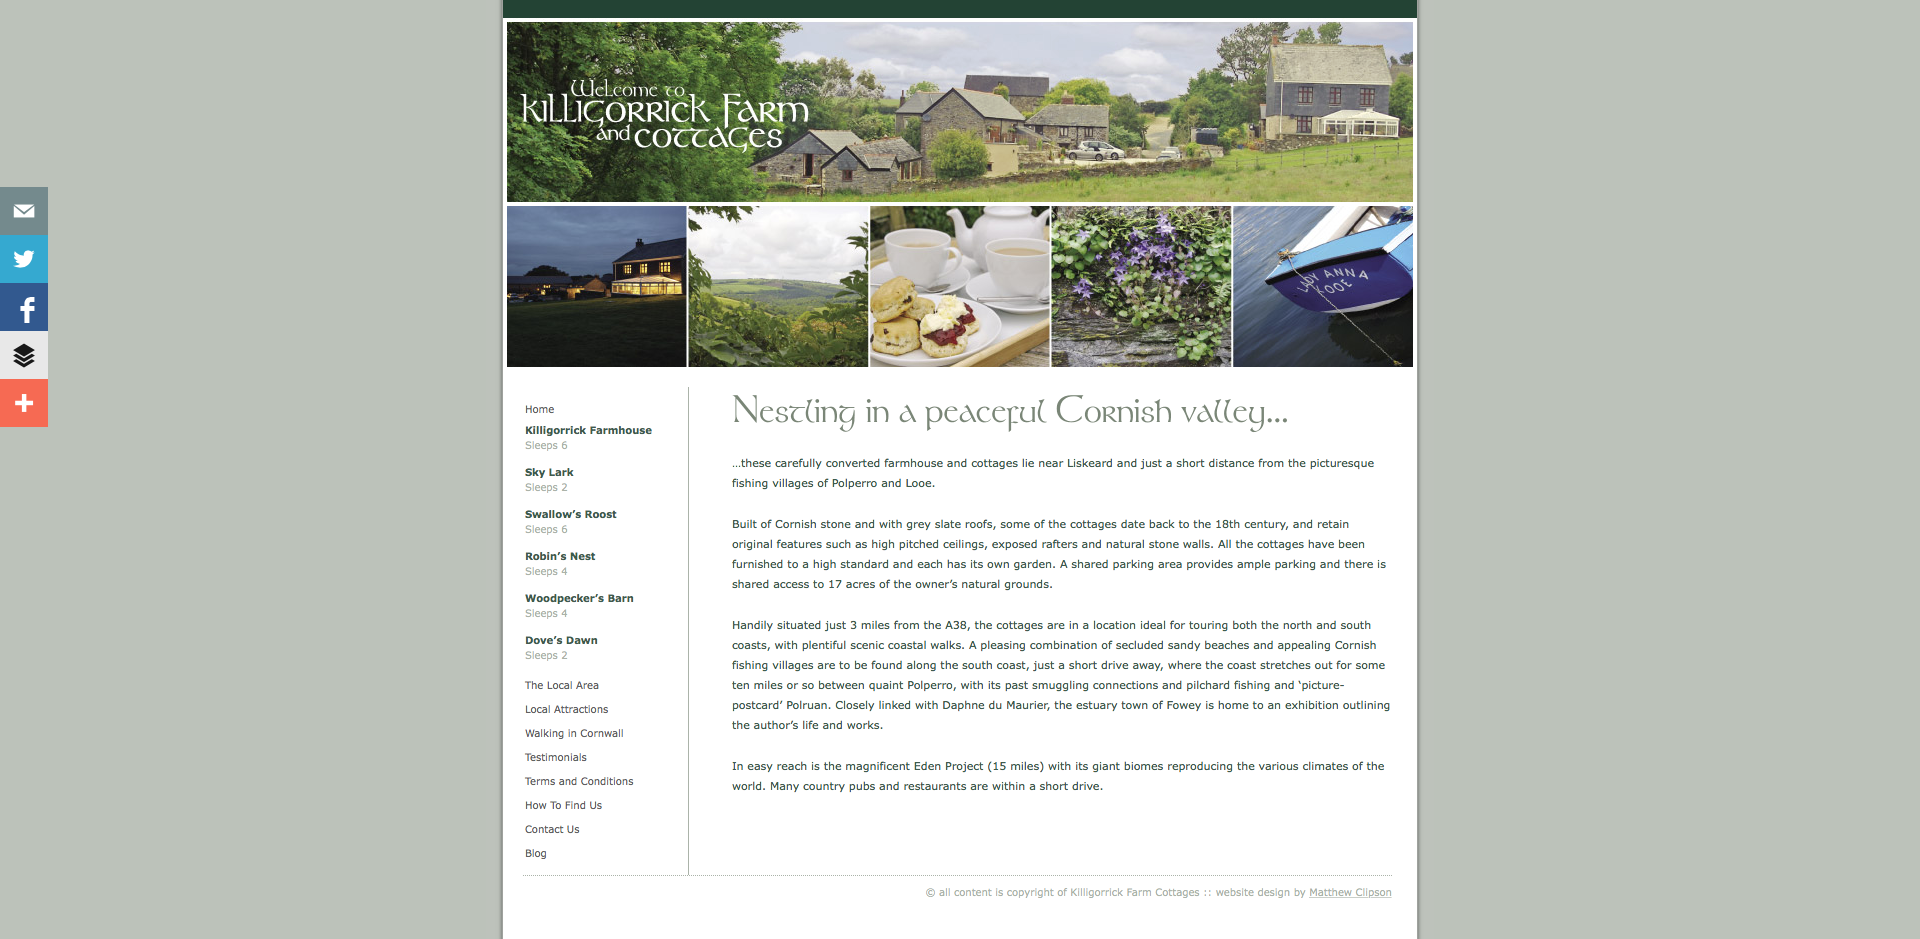 Killigorrick Farm and Cottages Home page